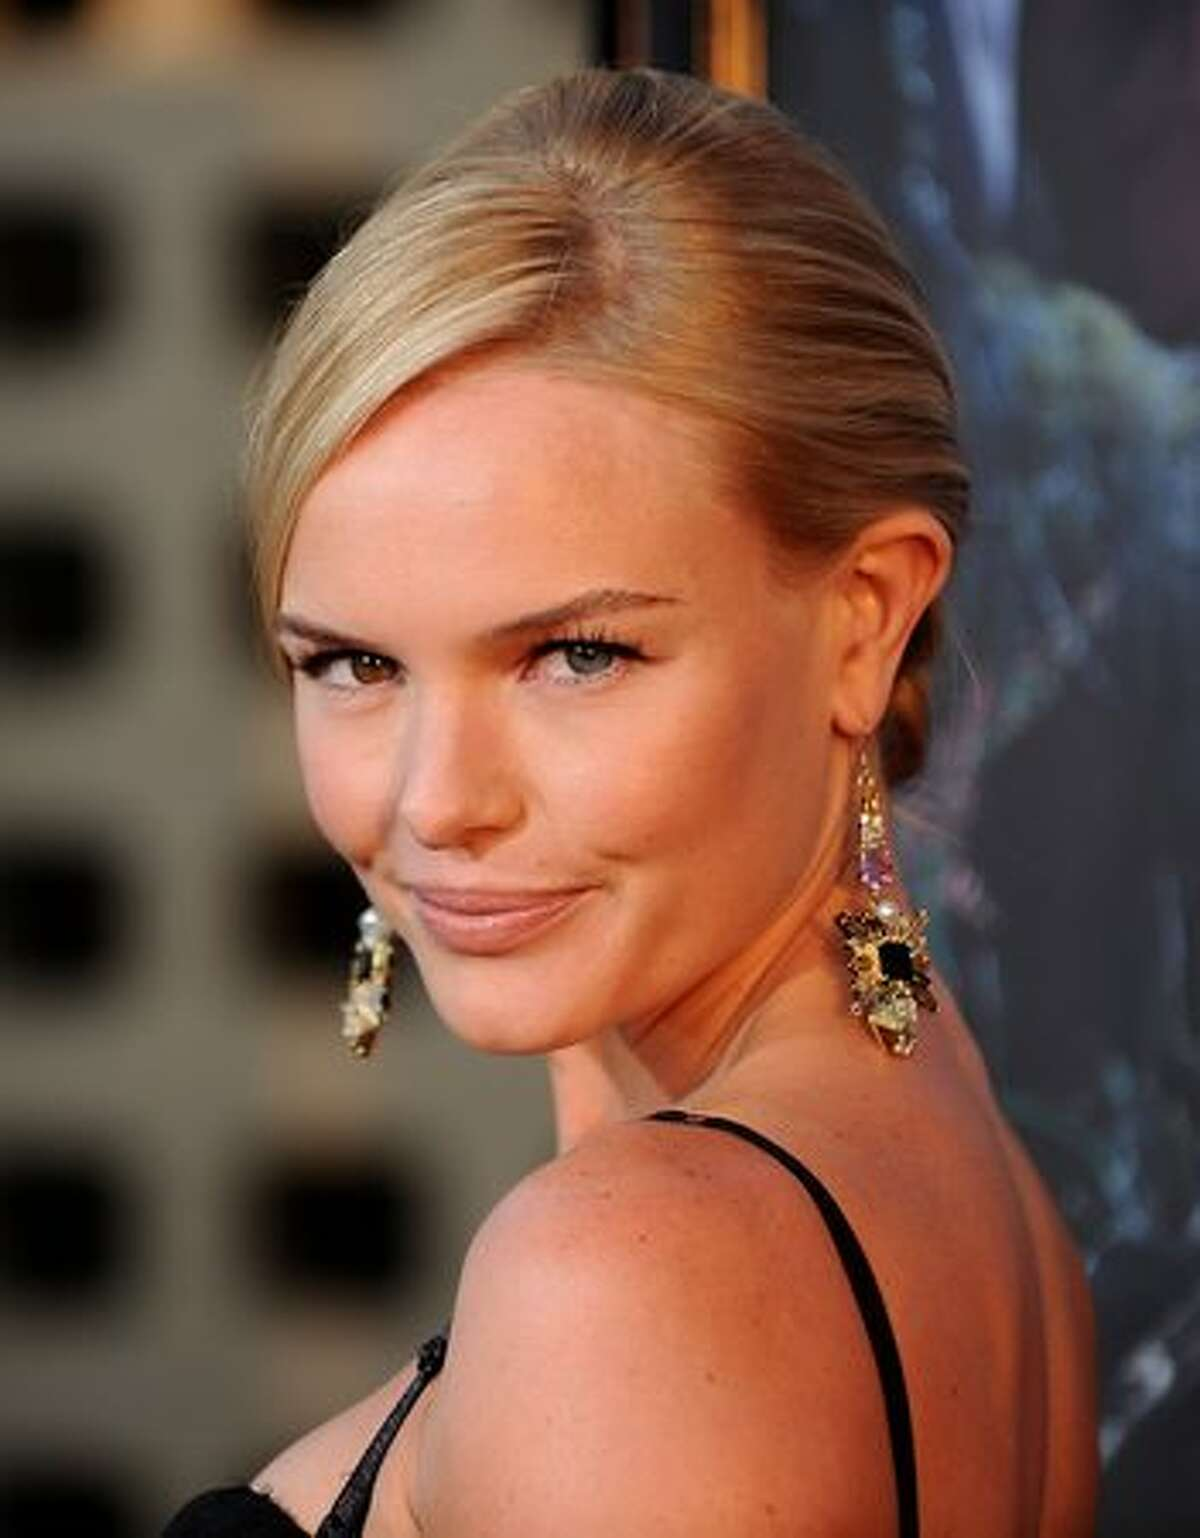 Actress Kate Bosworth arrives at the premiere of HBO's